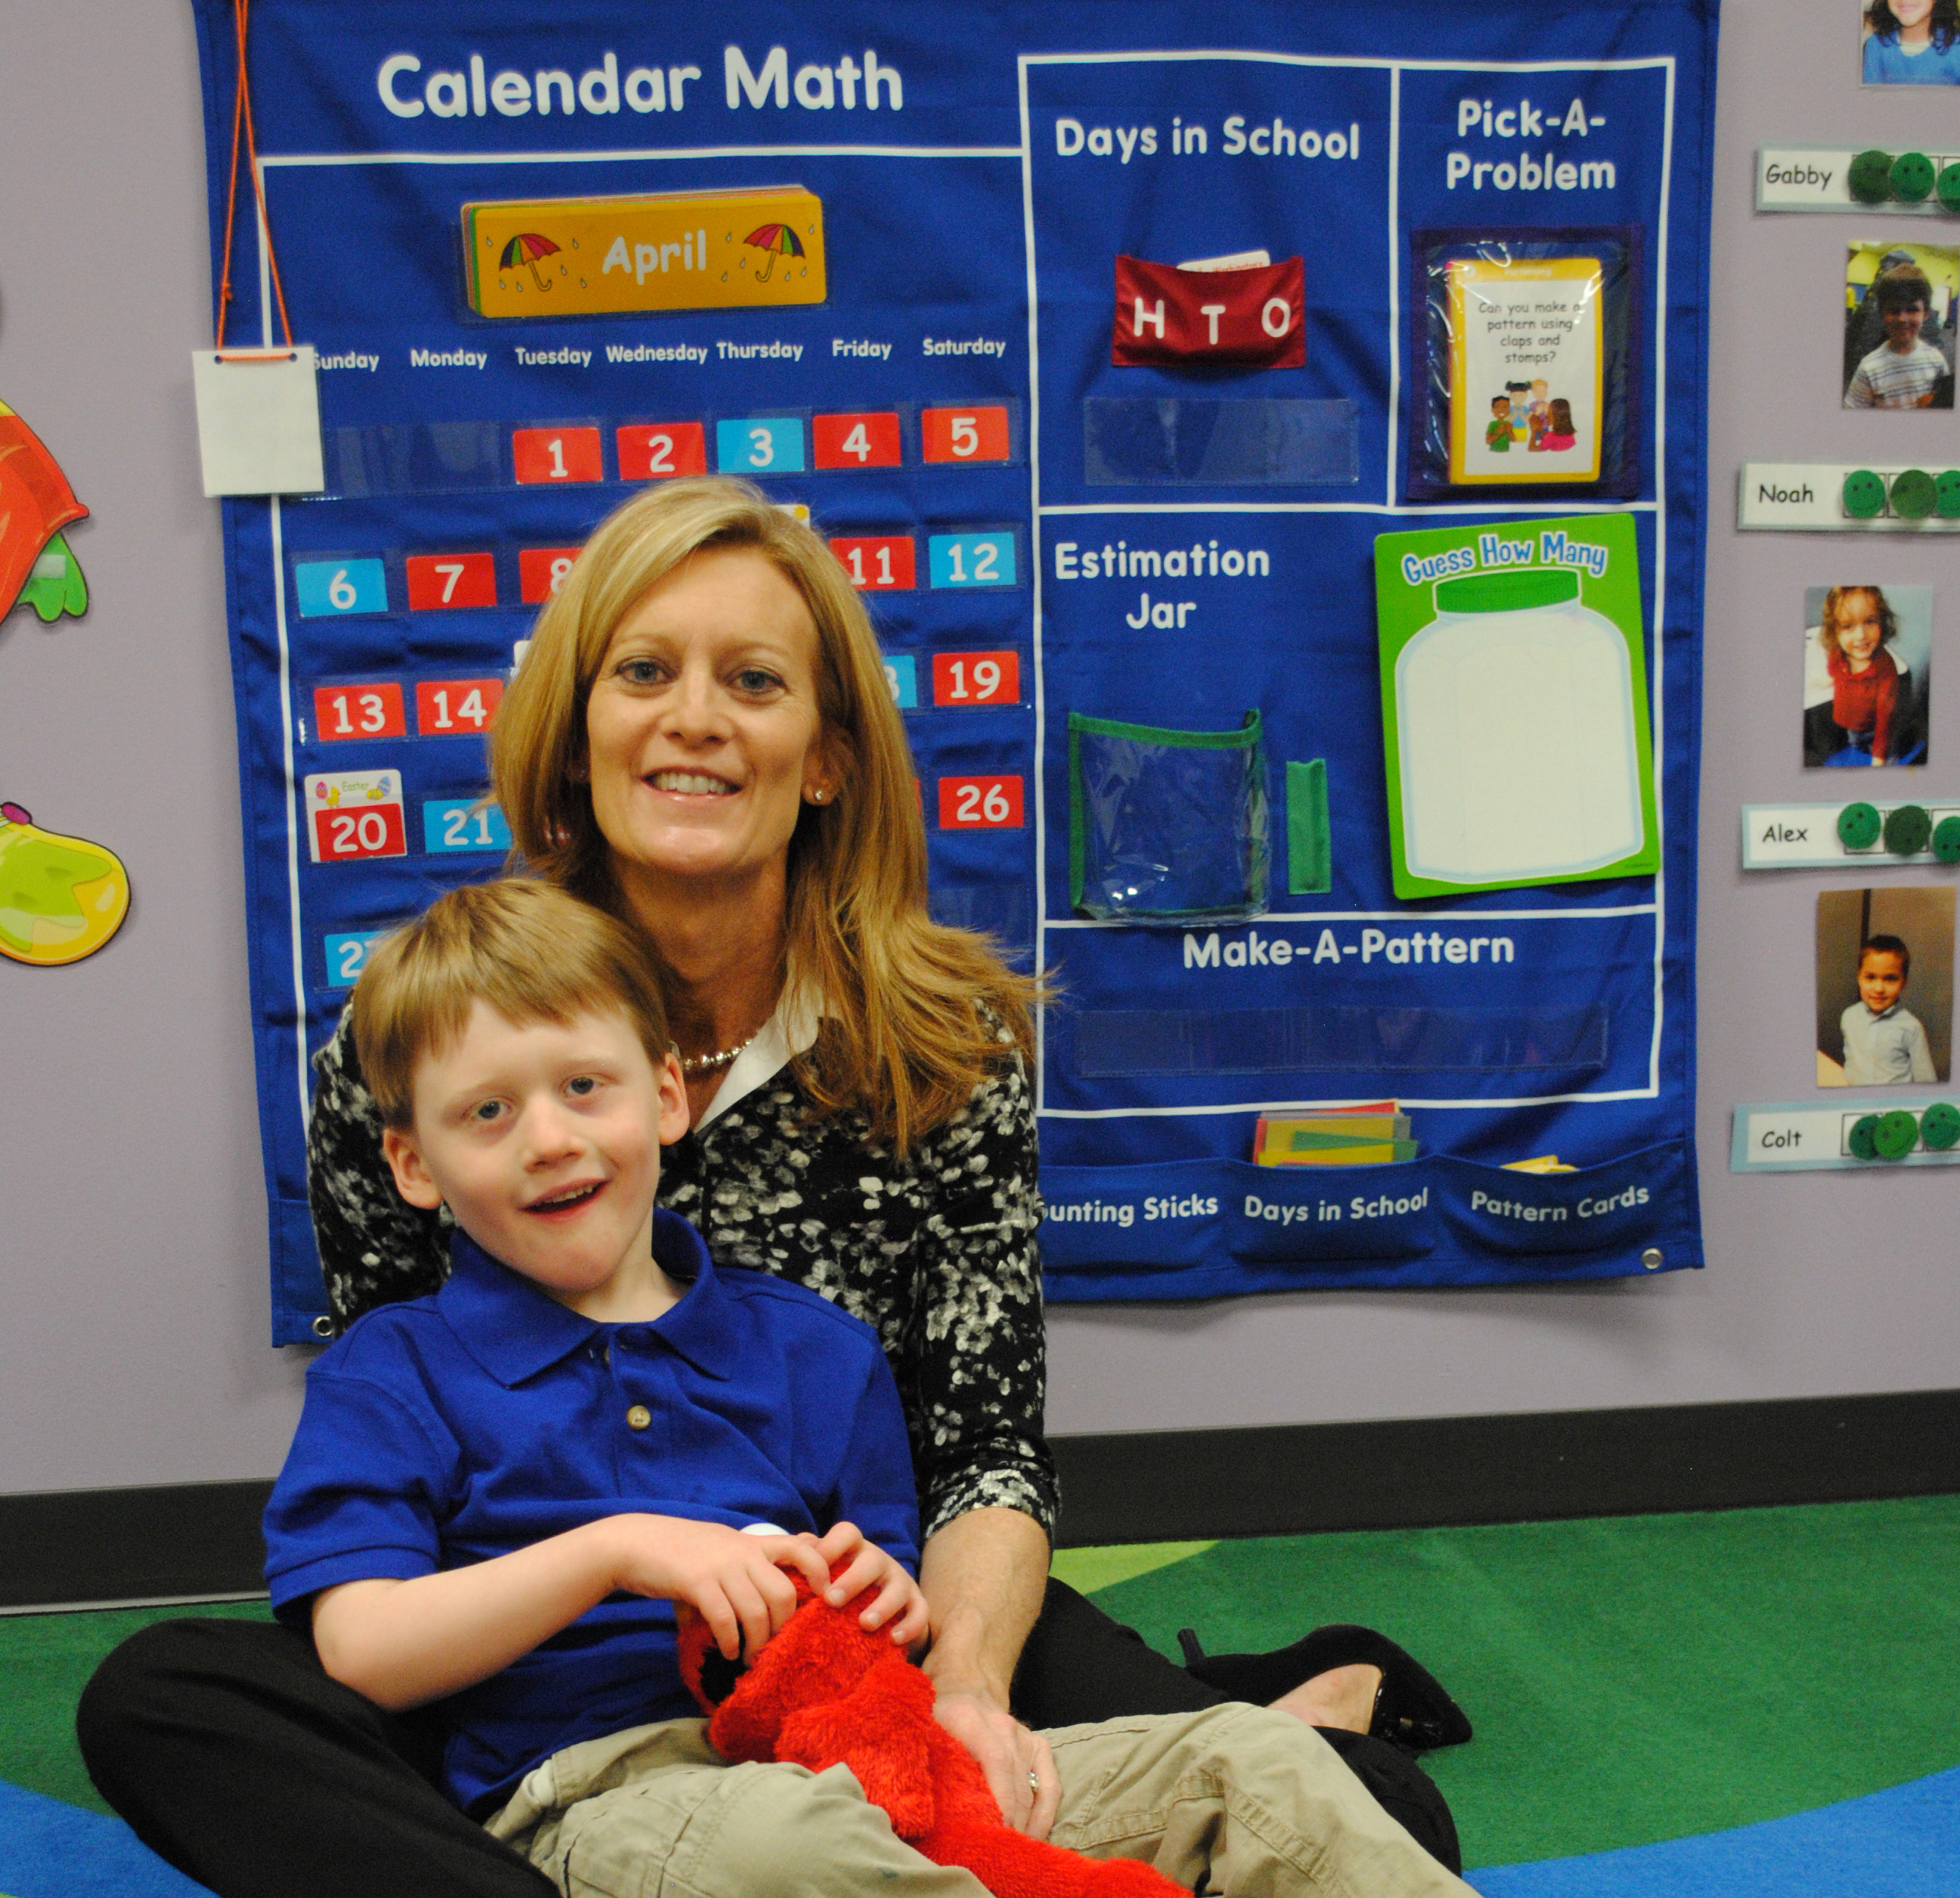 Kathy Rokita takes her son Teddy to school at the Little Star Center in Carmel, where he gets one-on-one therapeutic assistance. (Photo by Adam Aasen)